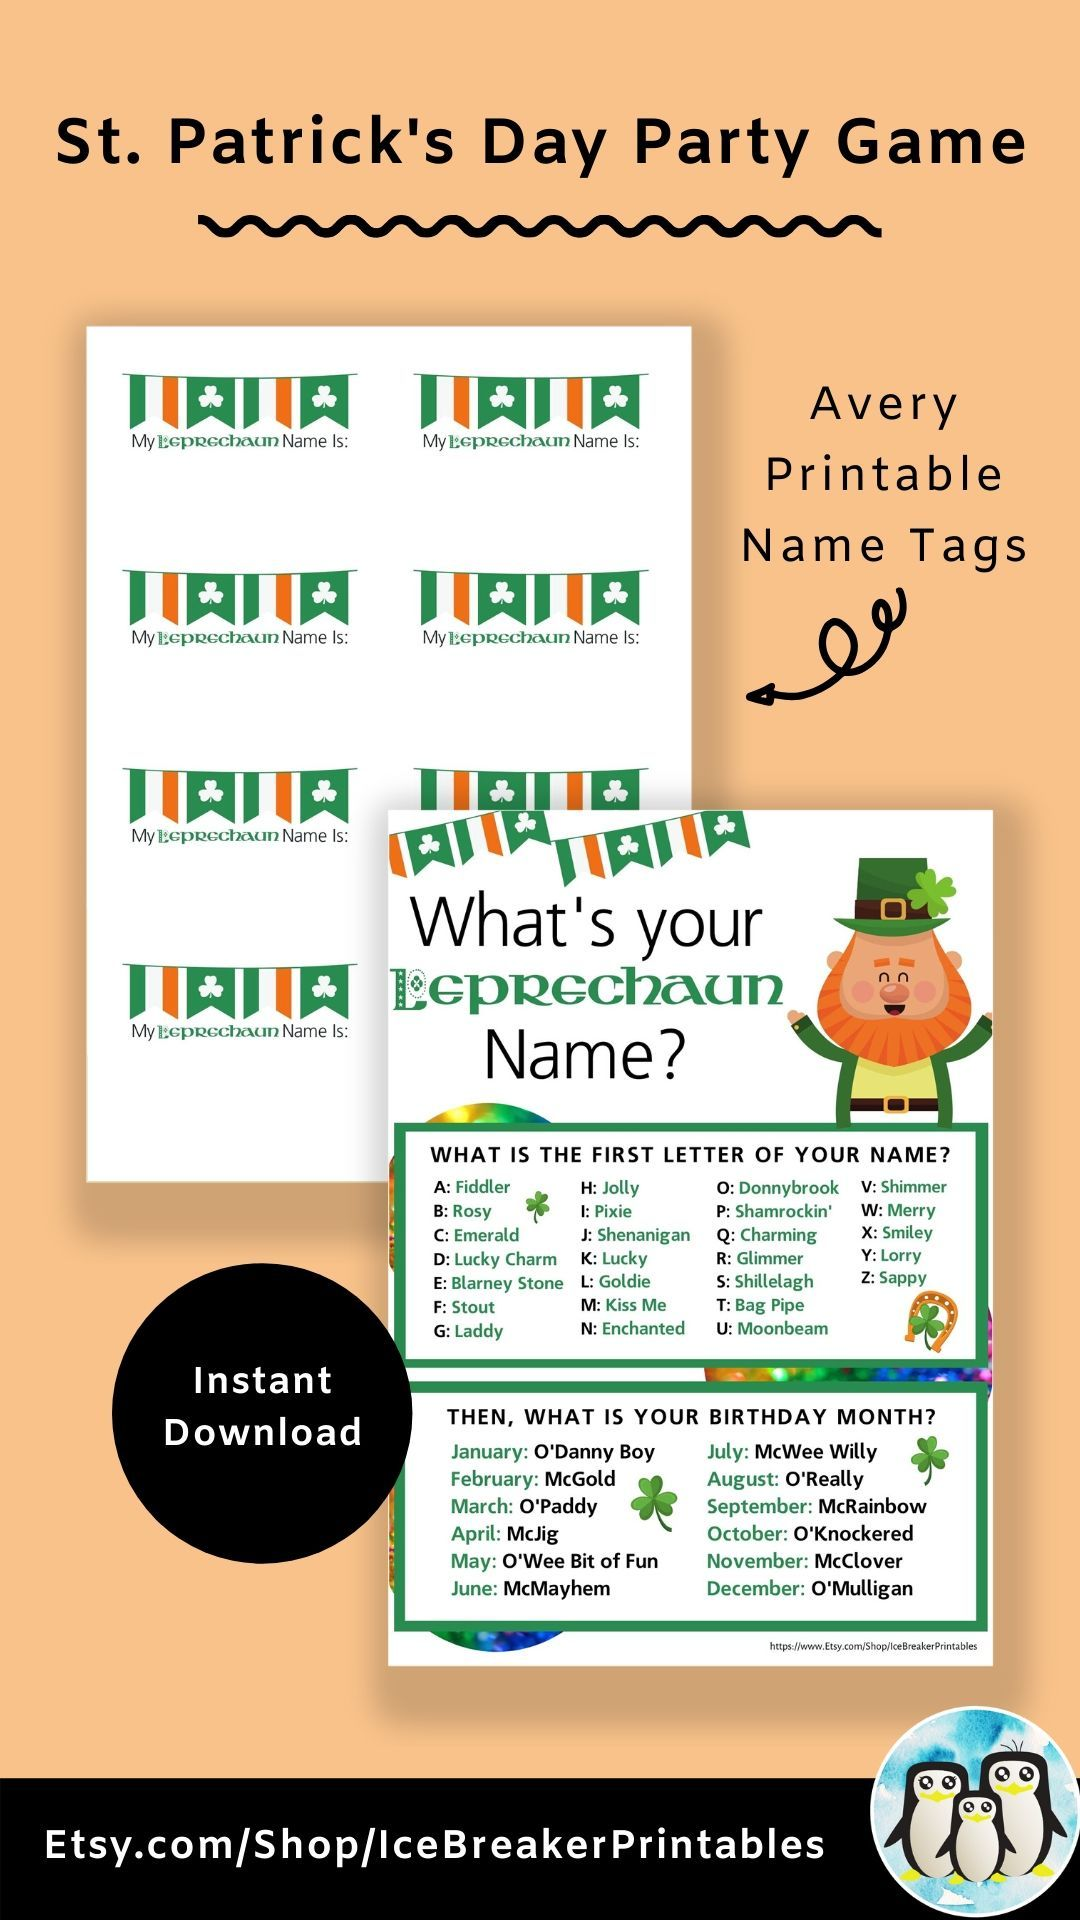 Leprechaun Party Game For A Little Luck Of The Irish For St Patrick S Day Party Fun Office Party Or St Pattys Classroom School Party Game Name Games School Party Games Funny